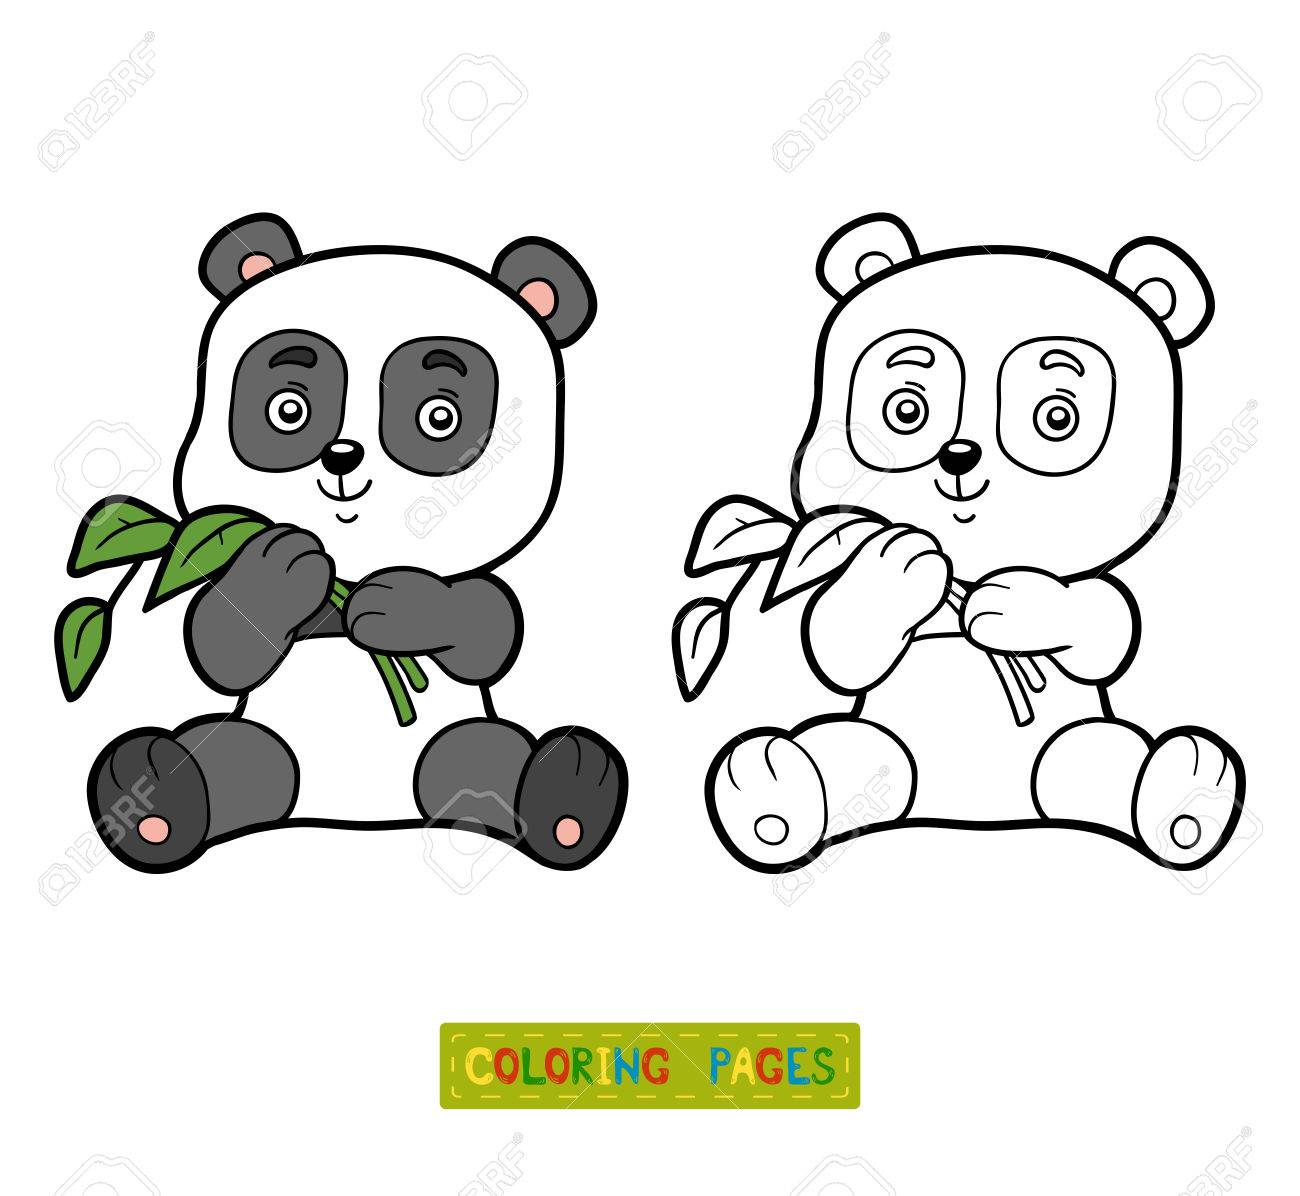 Coloring Book For Children Coloring Page With Little Panda